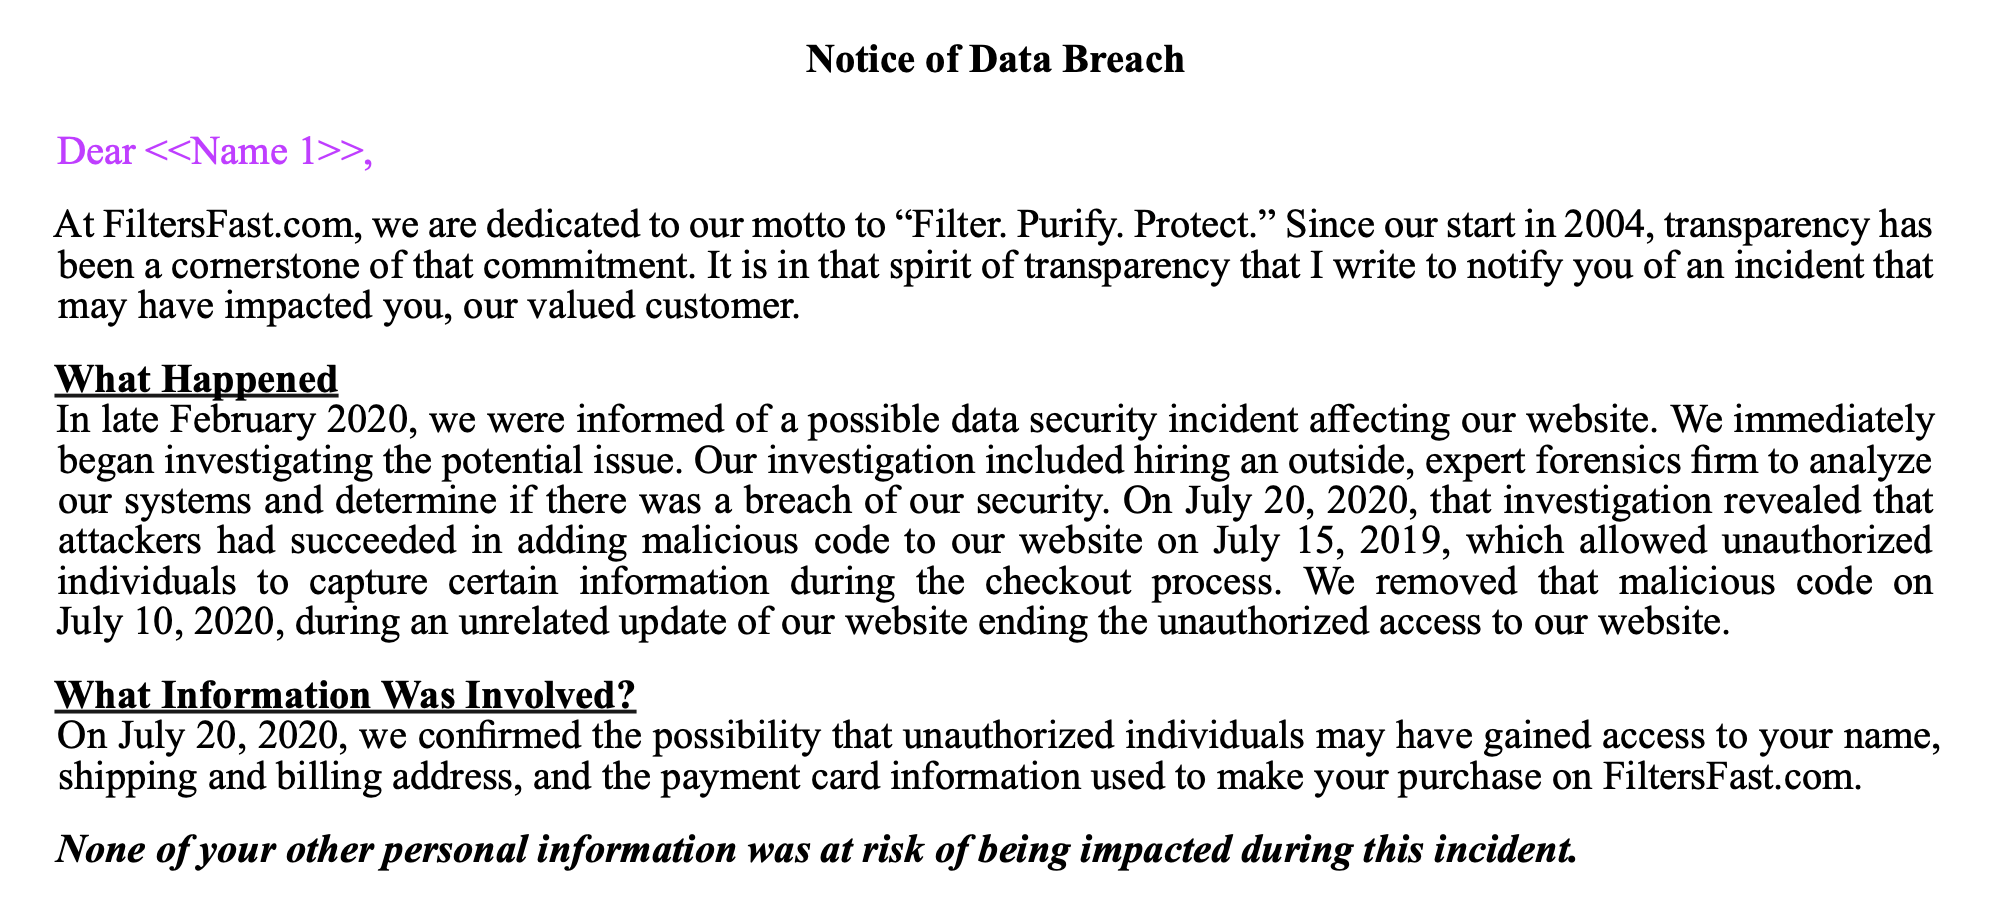 Partial Screenshot of the Notice of Data Breach